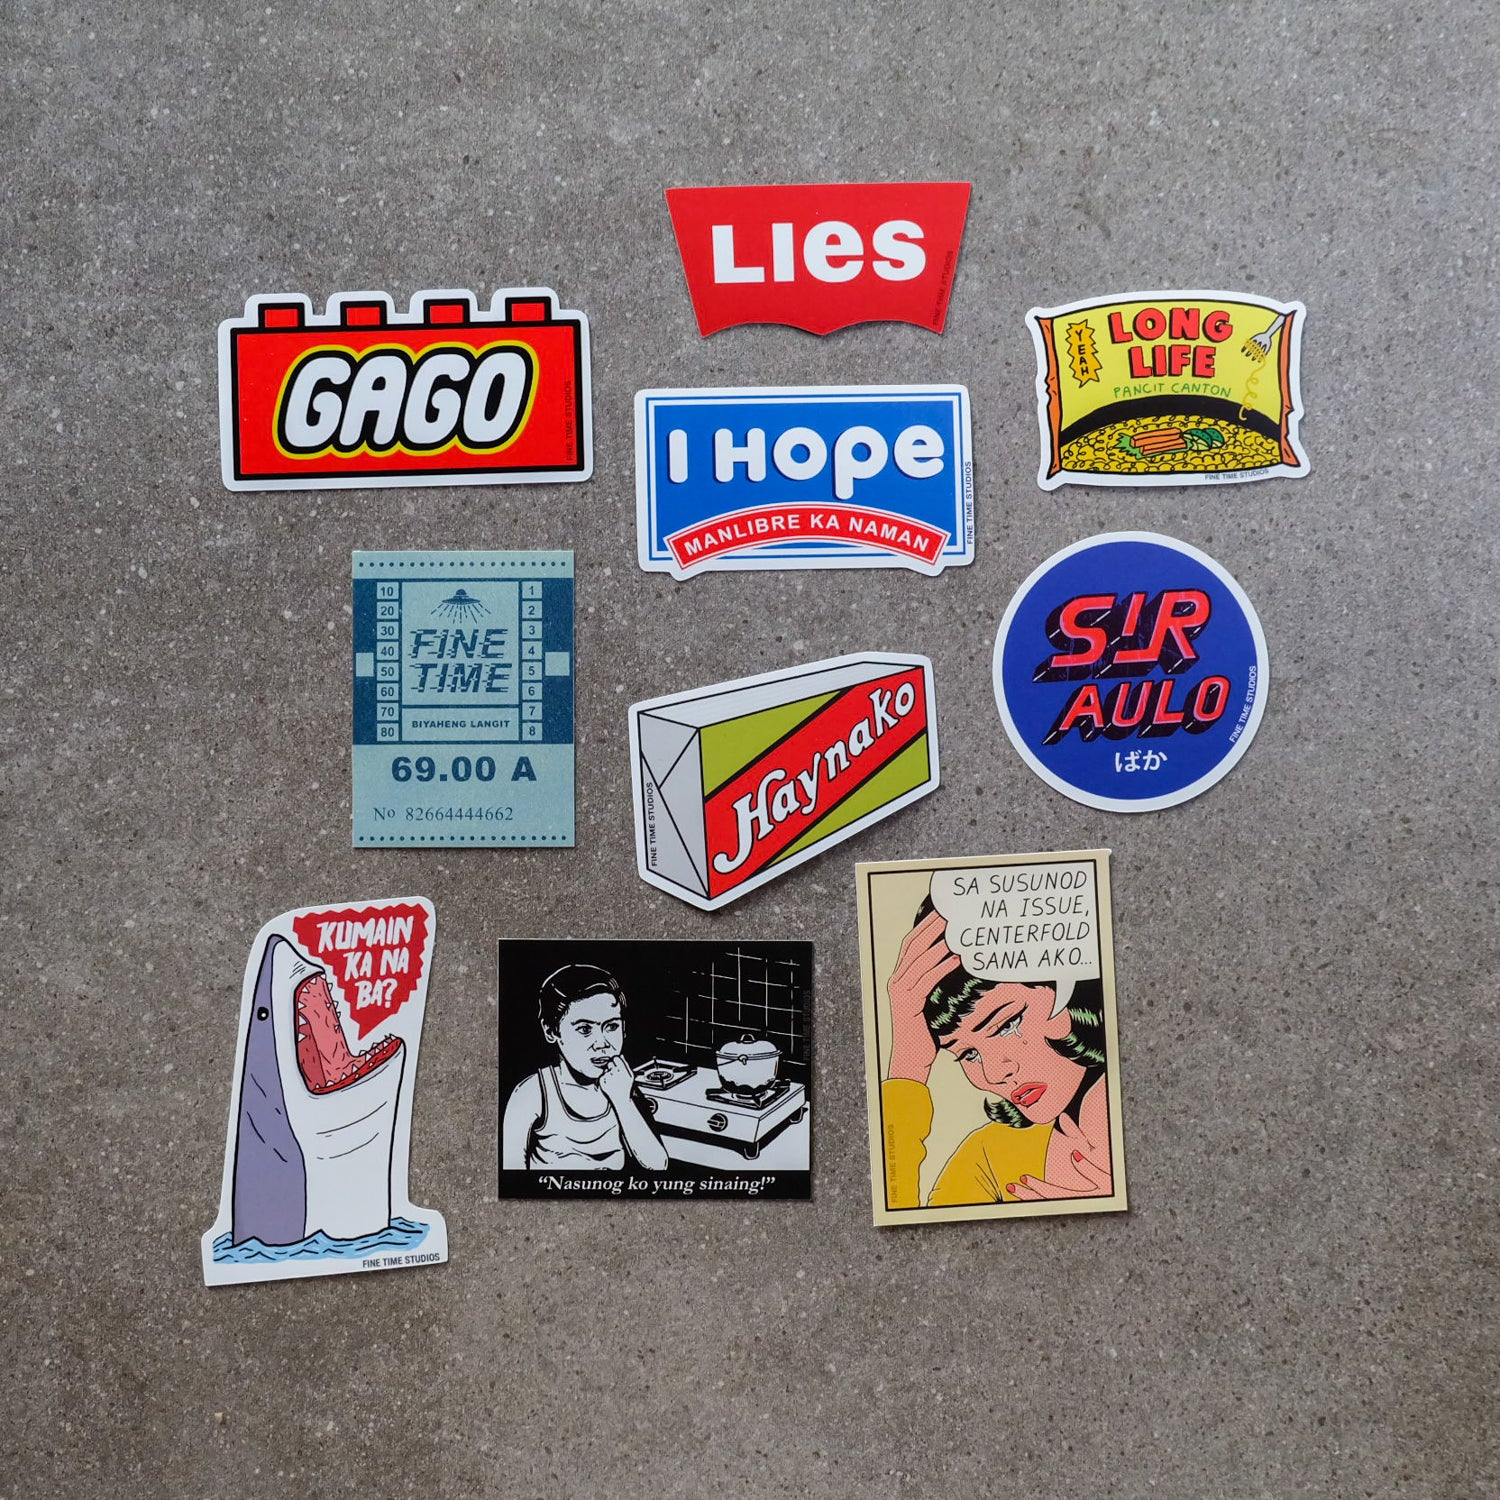 Fine Time Studios Sticker Packs - Common Room PH